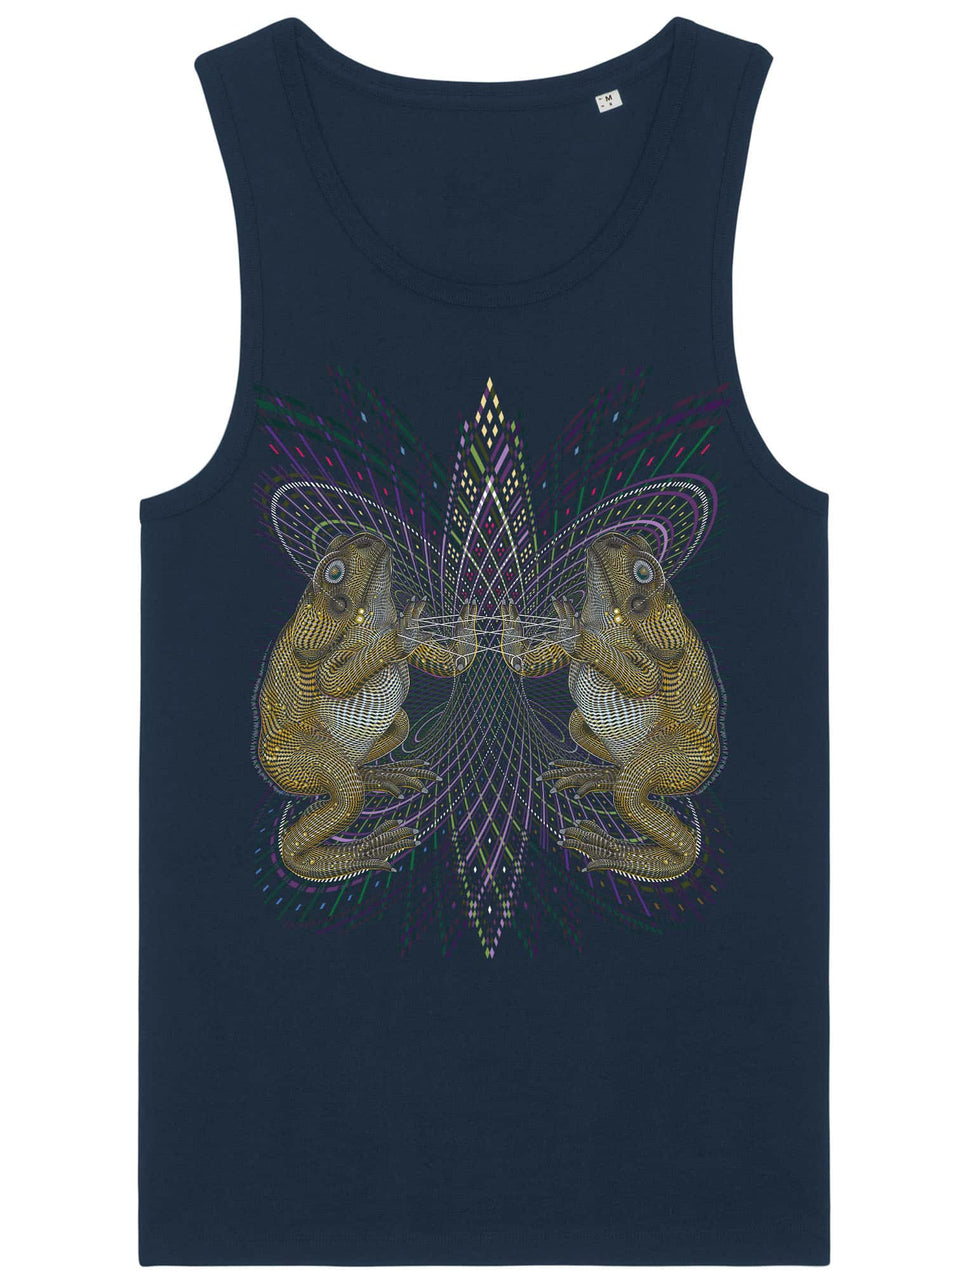 Bufo Alvarius Made To Order Men Tank Top - Navy